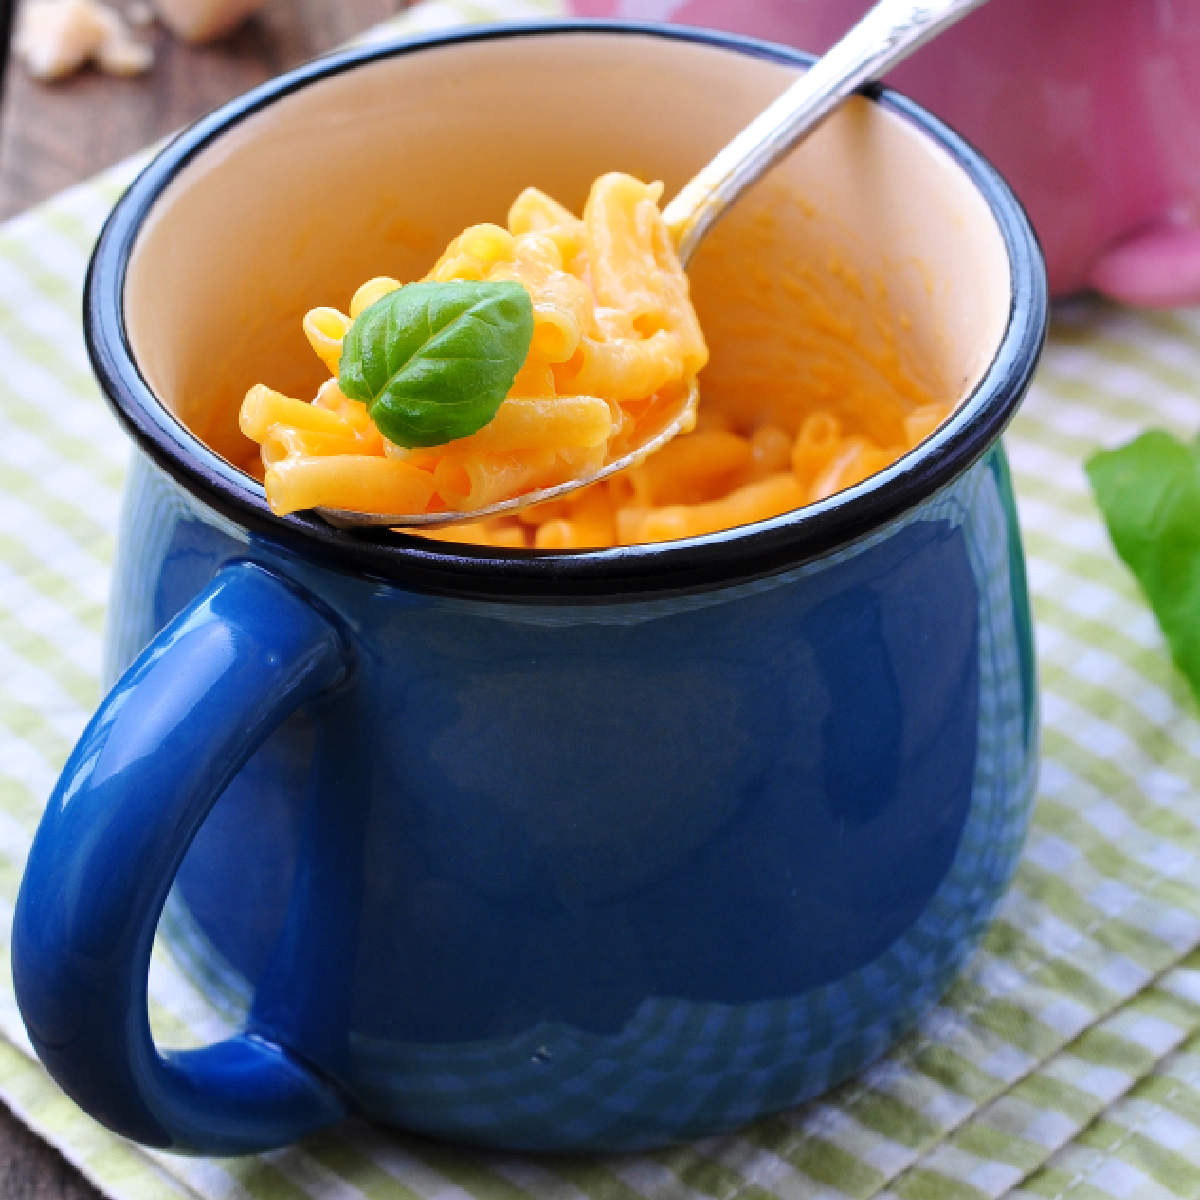 Mug Mac N Cheese Recipe How To Make Mug Mac N Cheese Recipe Homemade Mug Mac N Cheese Recipe